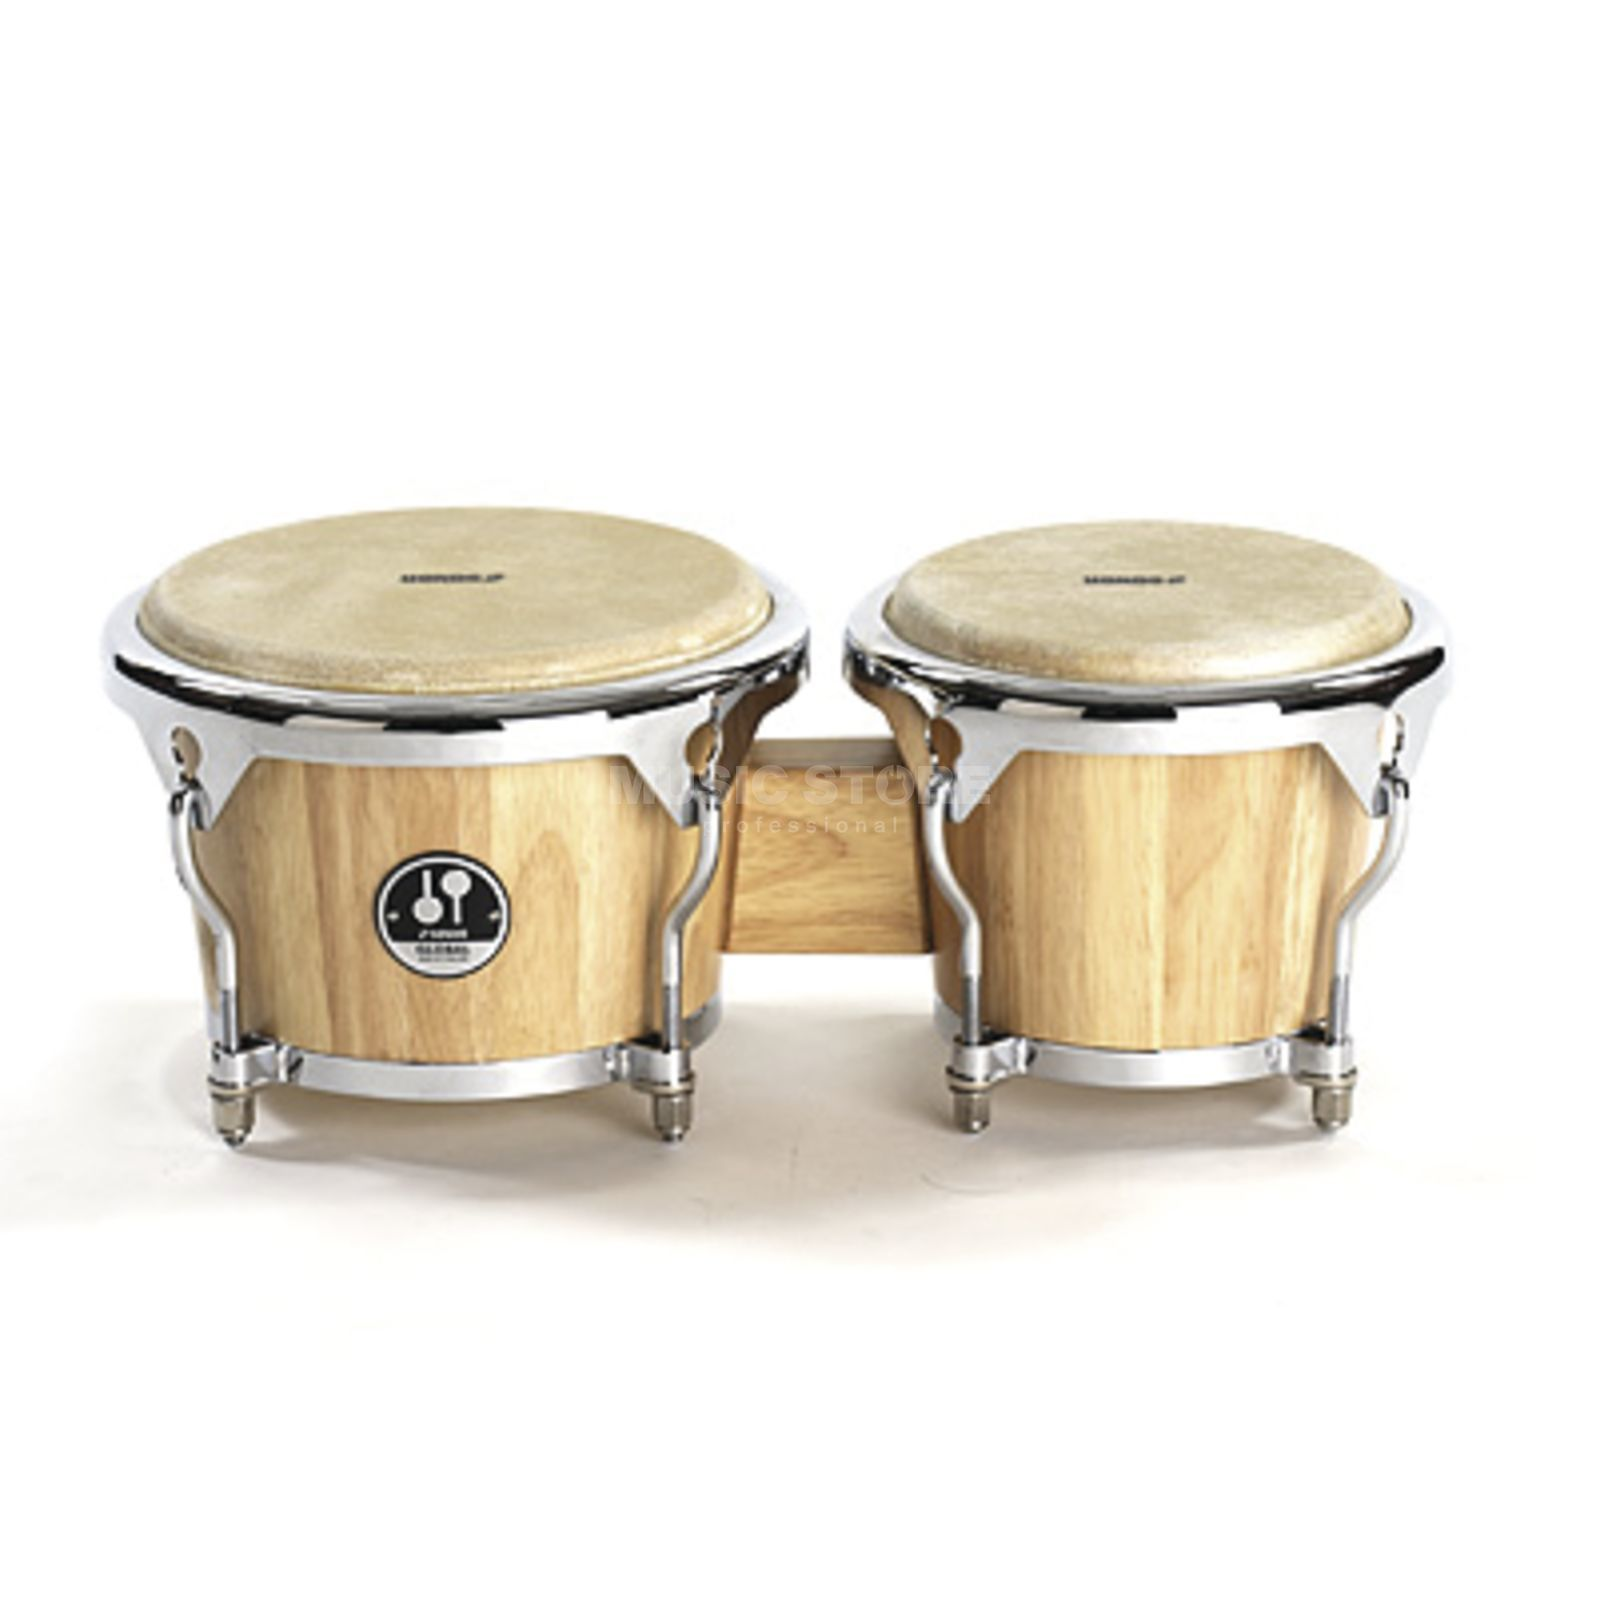 "Sonor Global Bongos GBW7850NM 7""+8 1/2"", Natural Matte Produktbild"